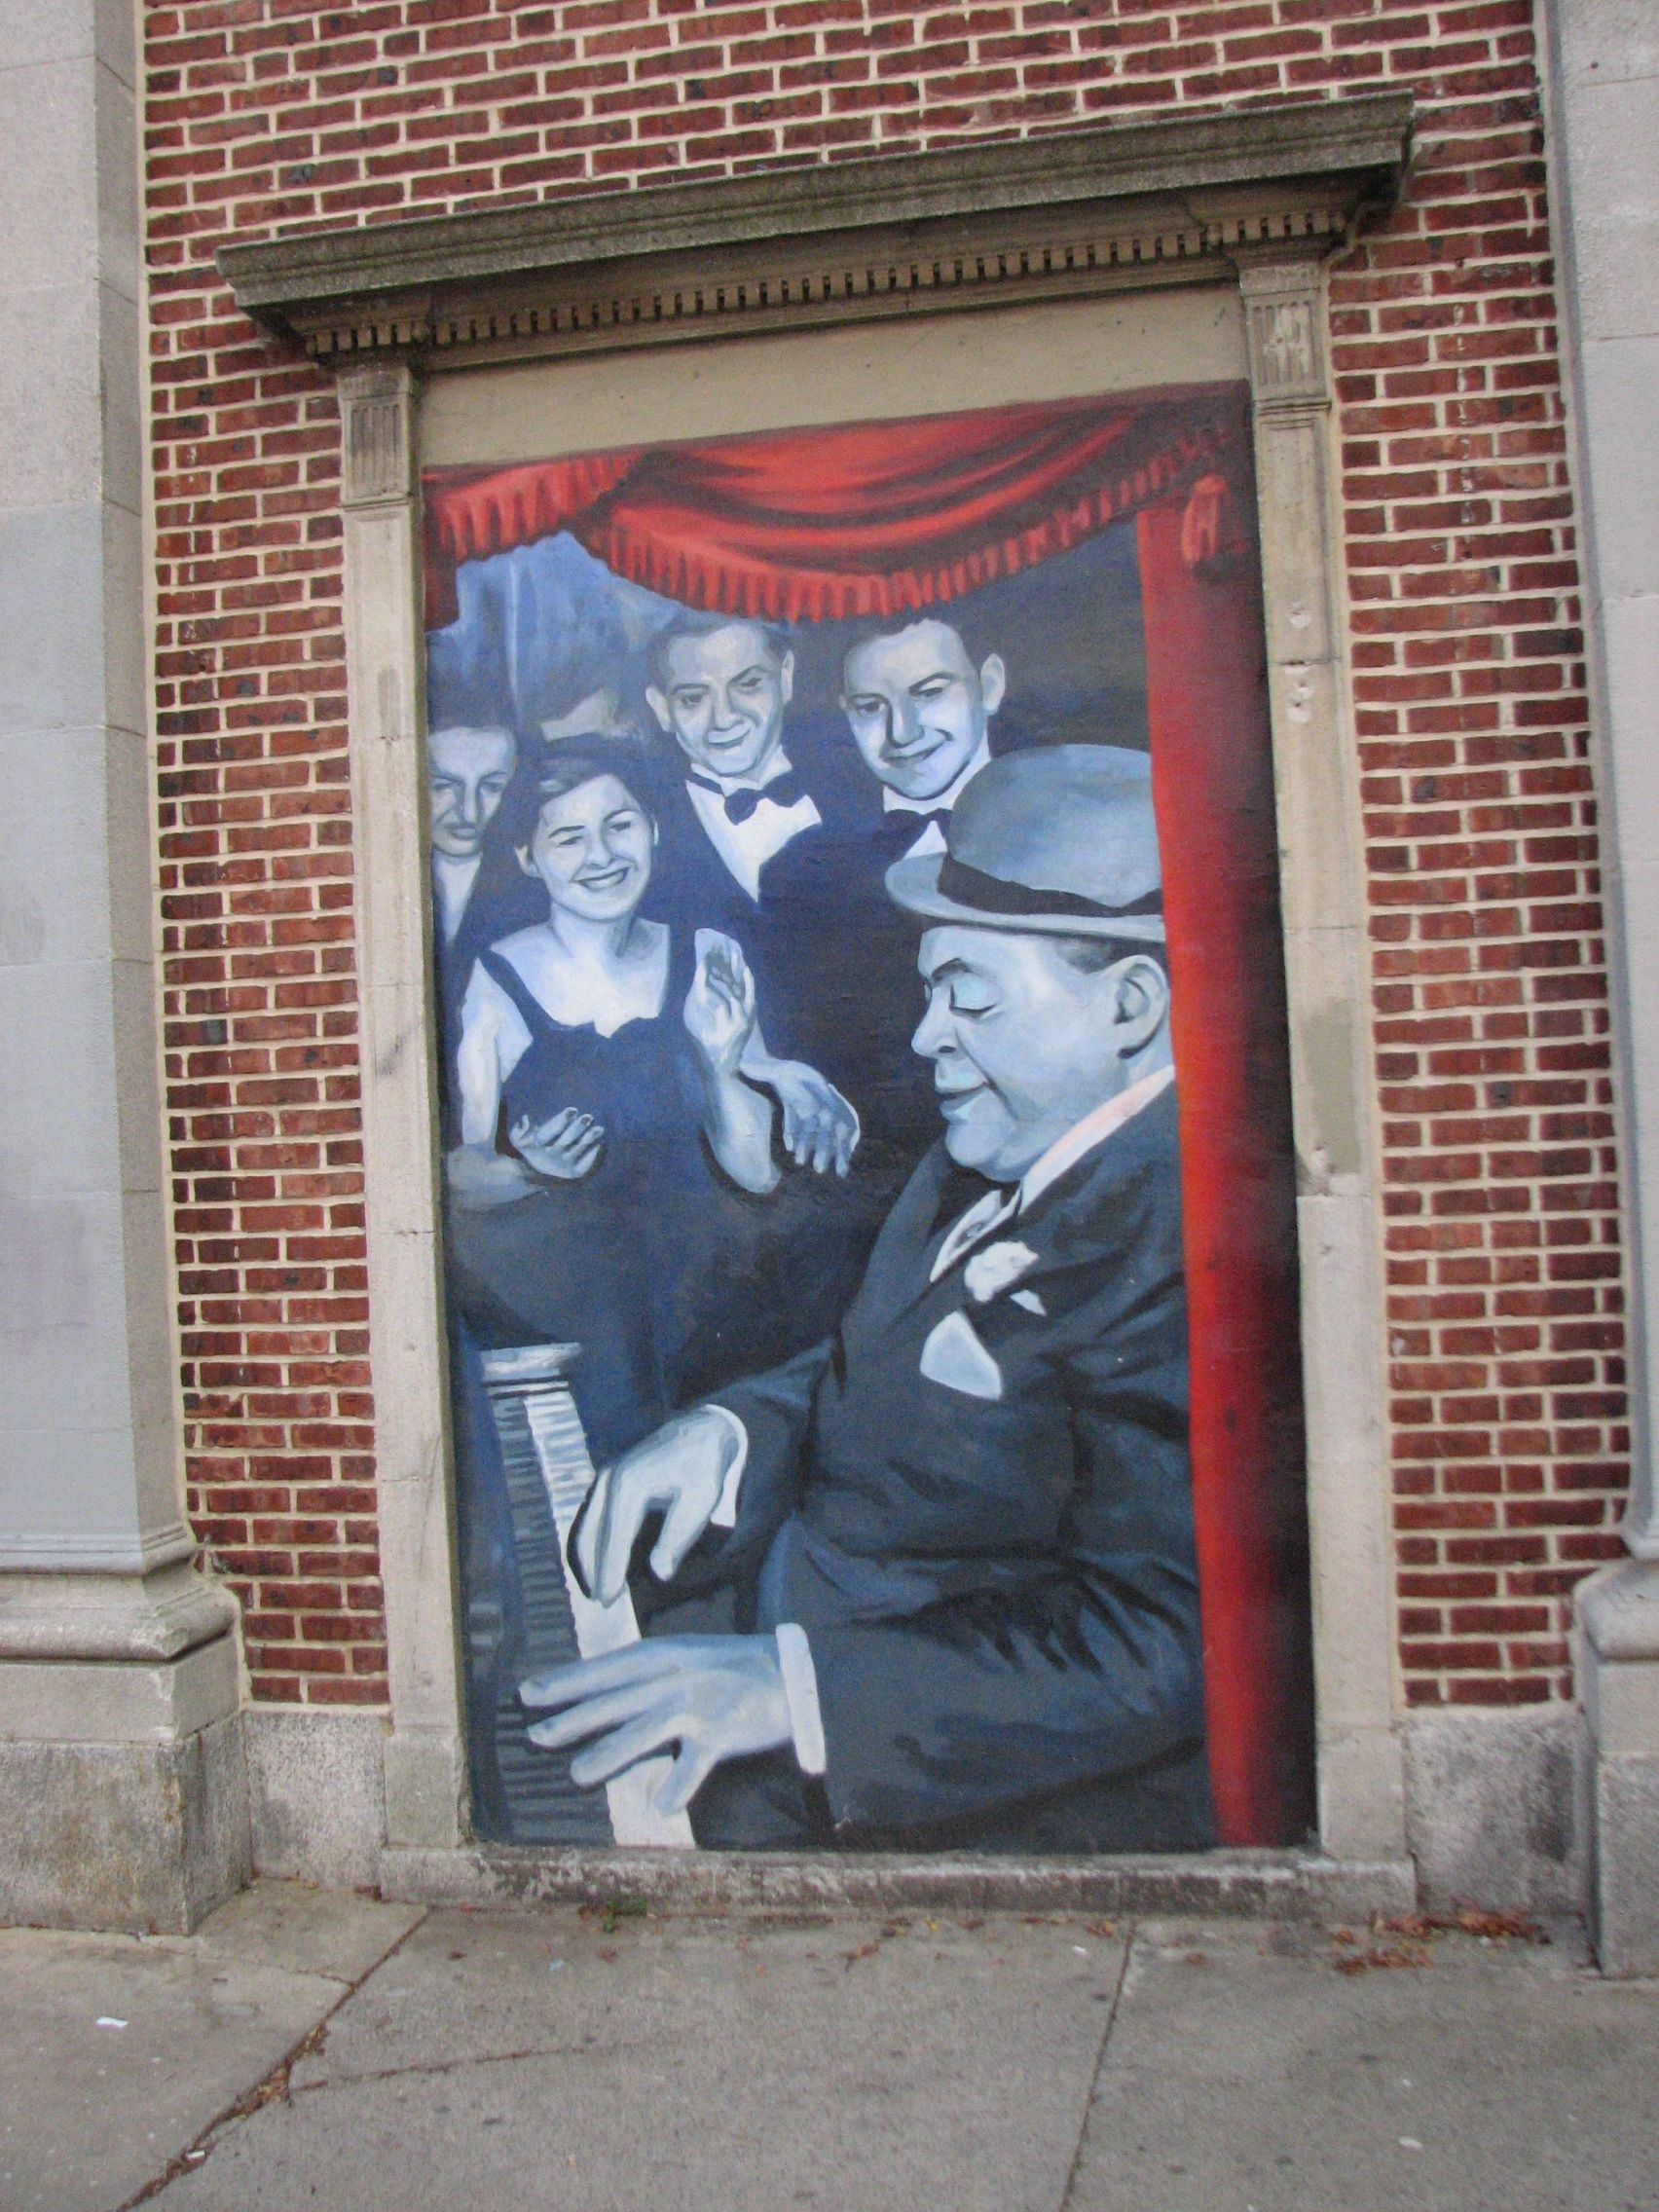 Murals of Fats Waller and other performers who played the Royal were added in recent years by Universal Companies.